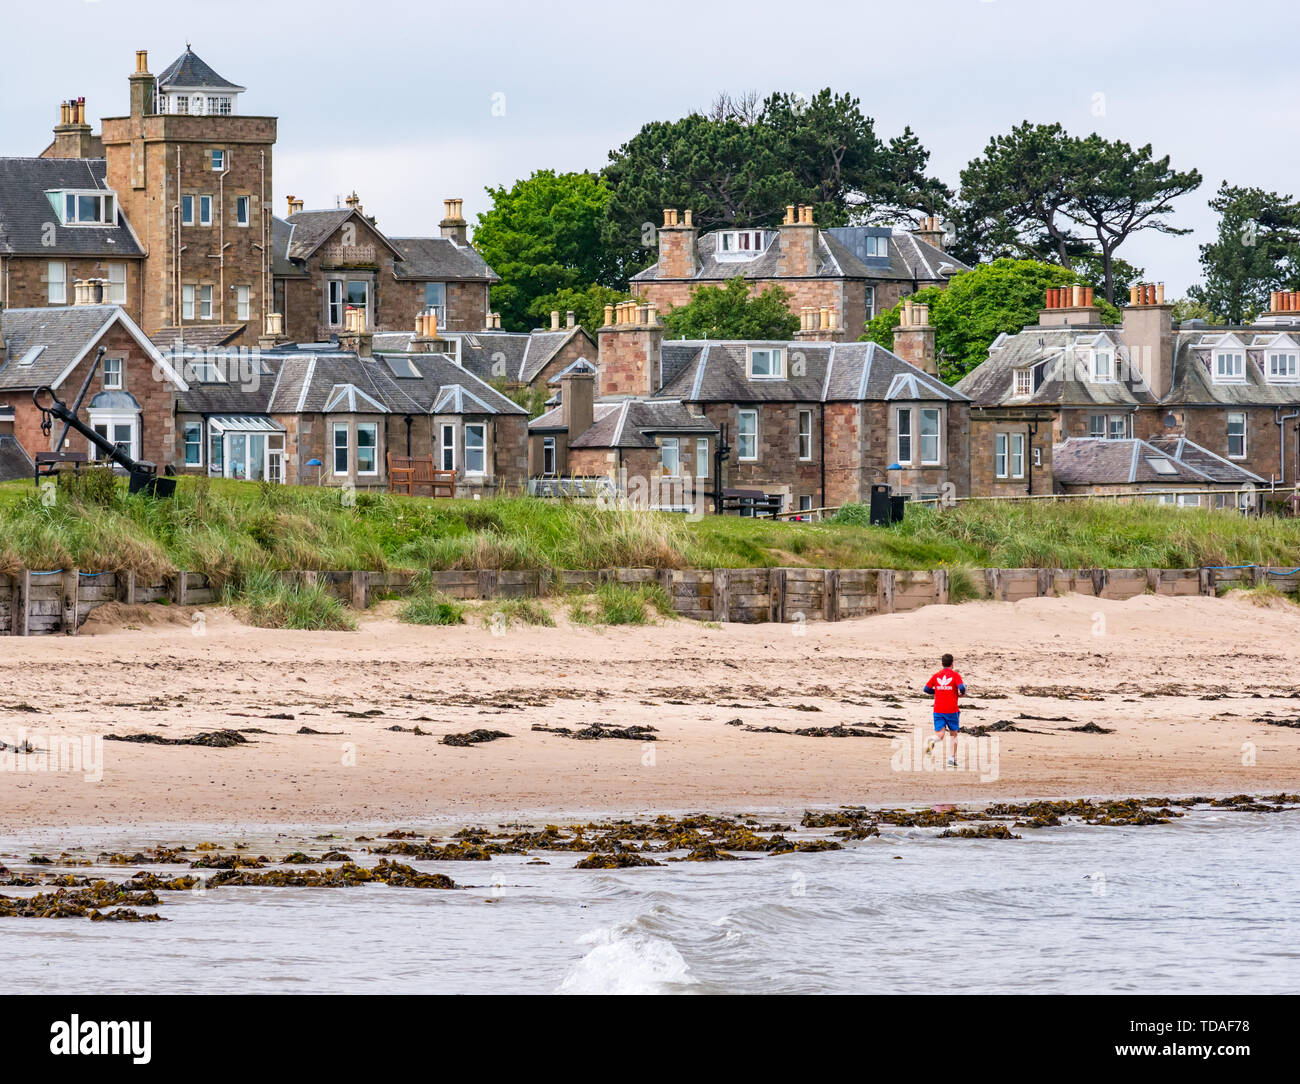 North Berwick, East Lothian, Scotland, United Kingdom, 14th June 2019. UK Weather: After East Lothian suffered heavy rain the last few days, the weather has brightened, and people enjoy the outdoor pursuits in the seaside town. A man jogging on West Bay beach. Credit: Sally Anderson/Alamy Live News - Stock Image